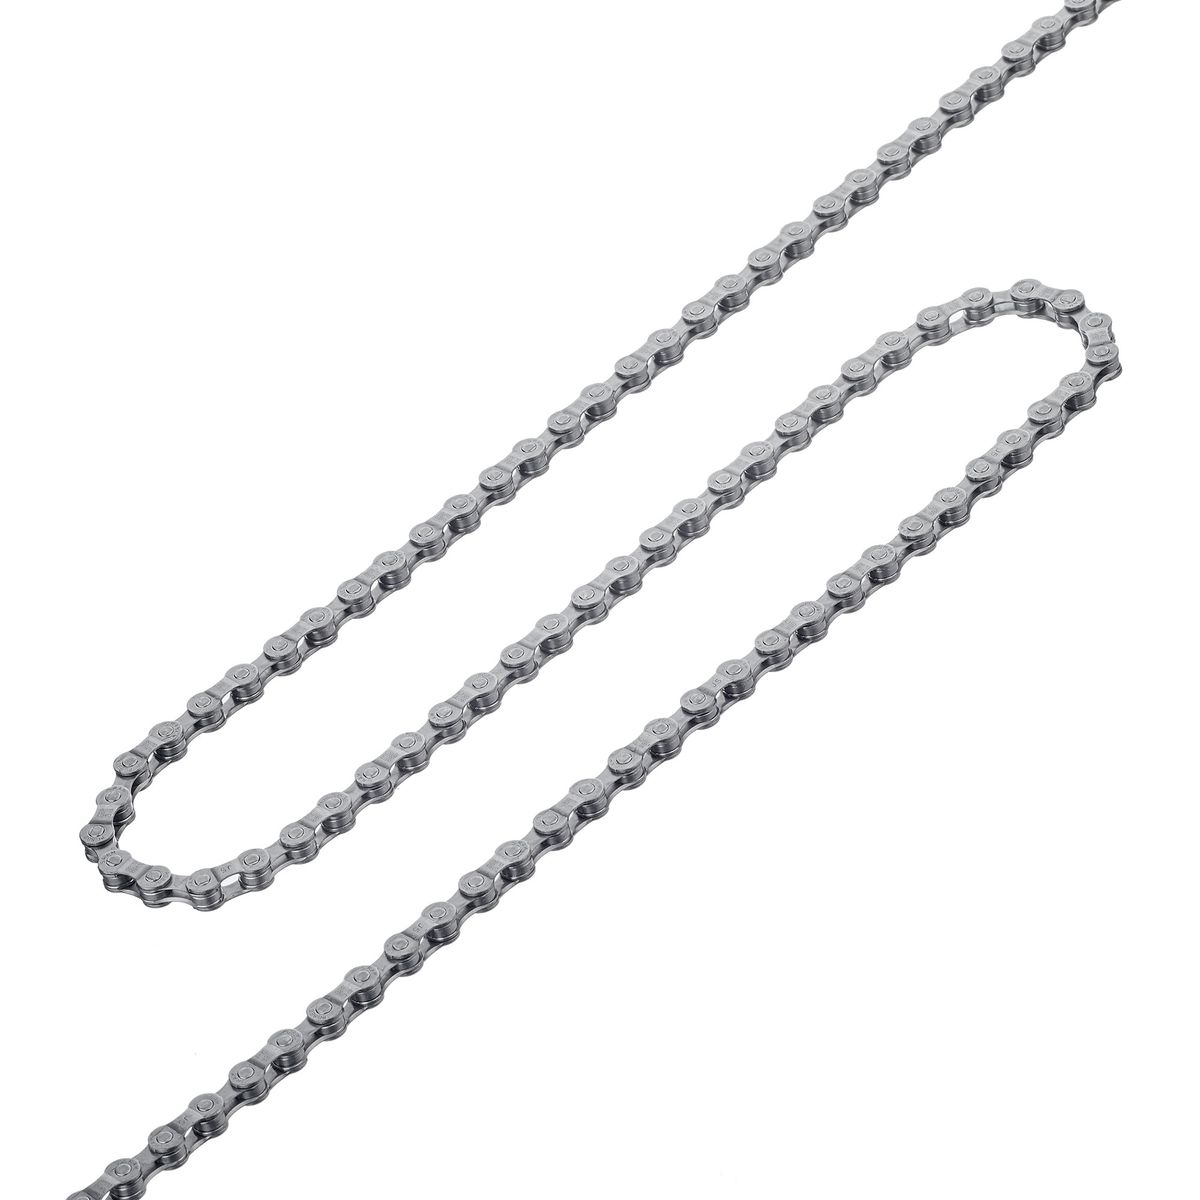 Sram PC-830 8-speed chain